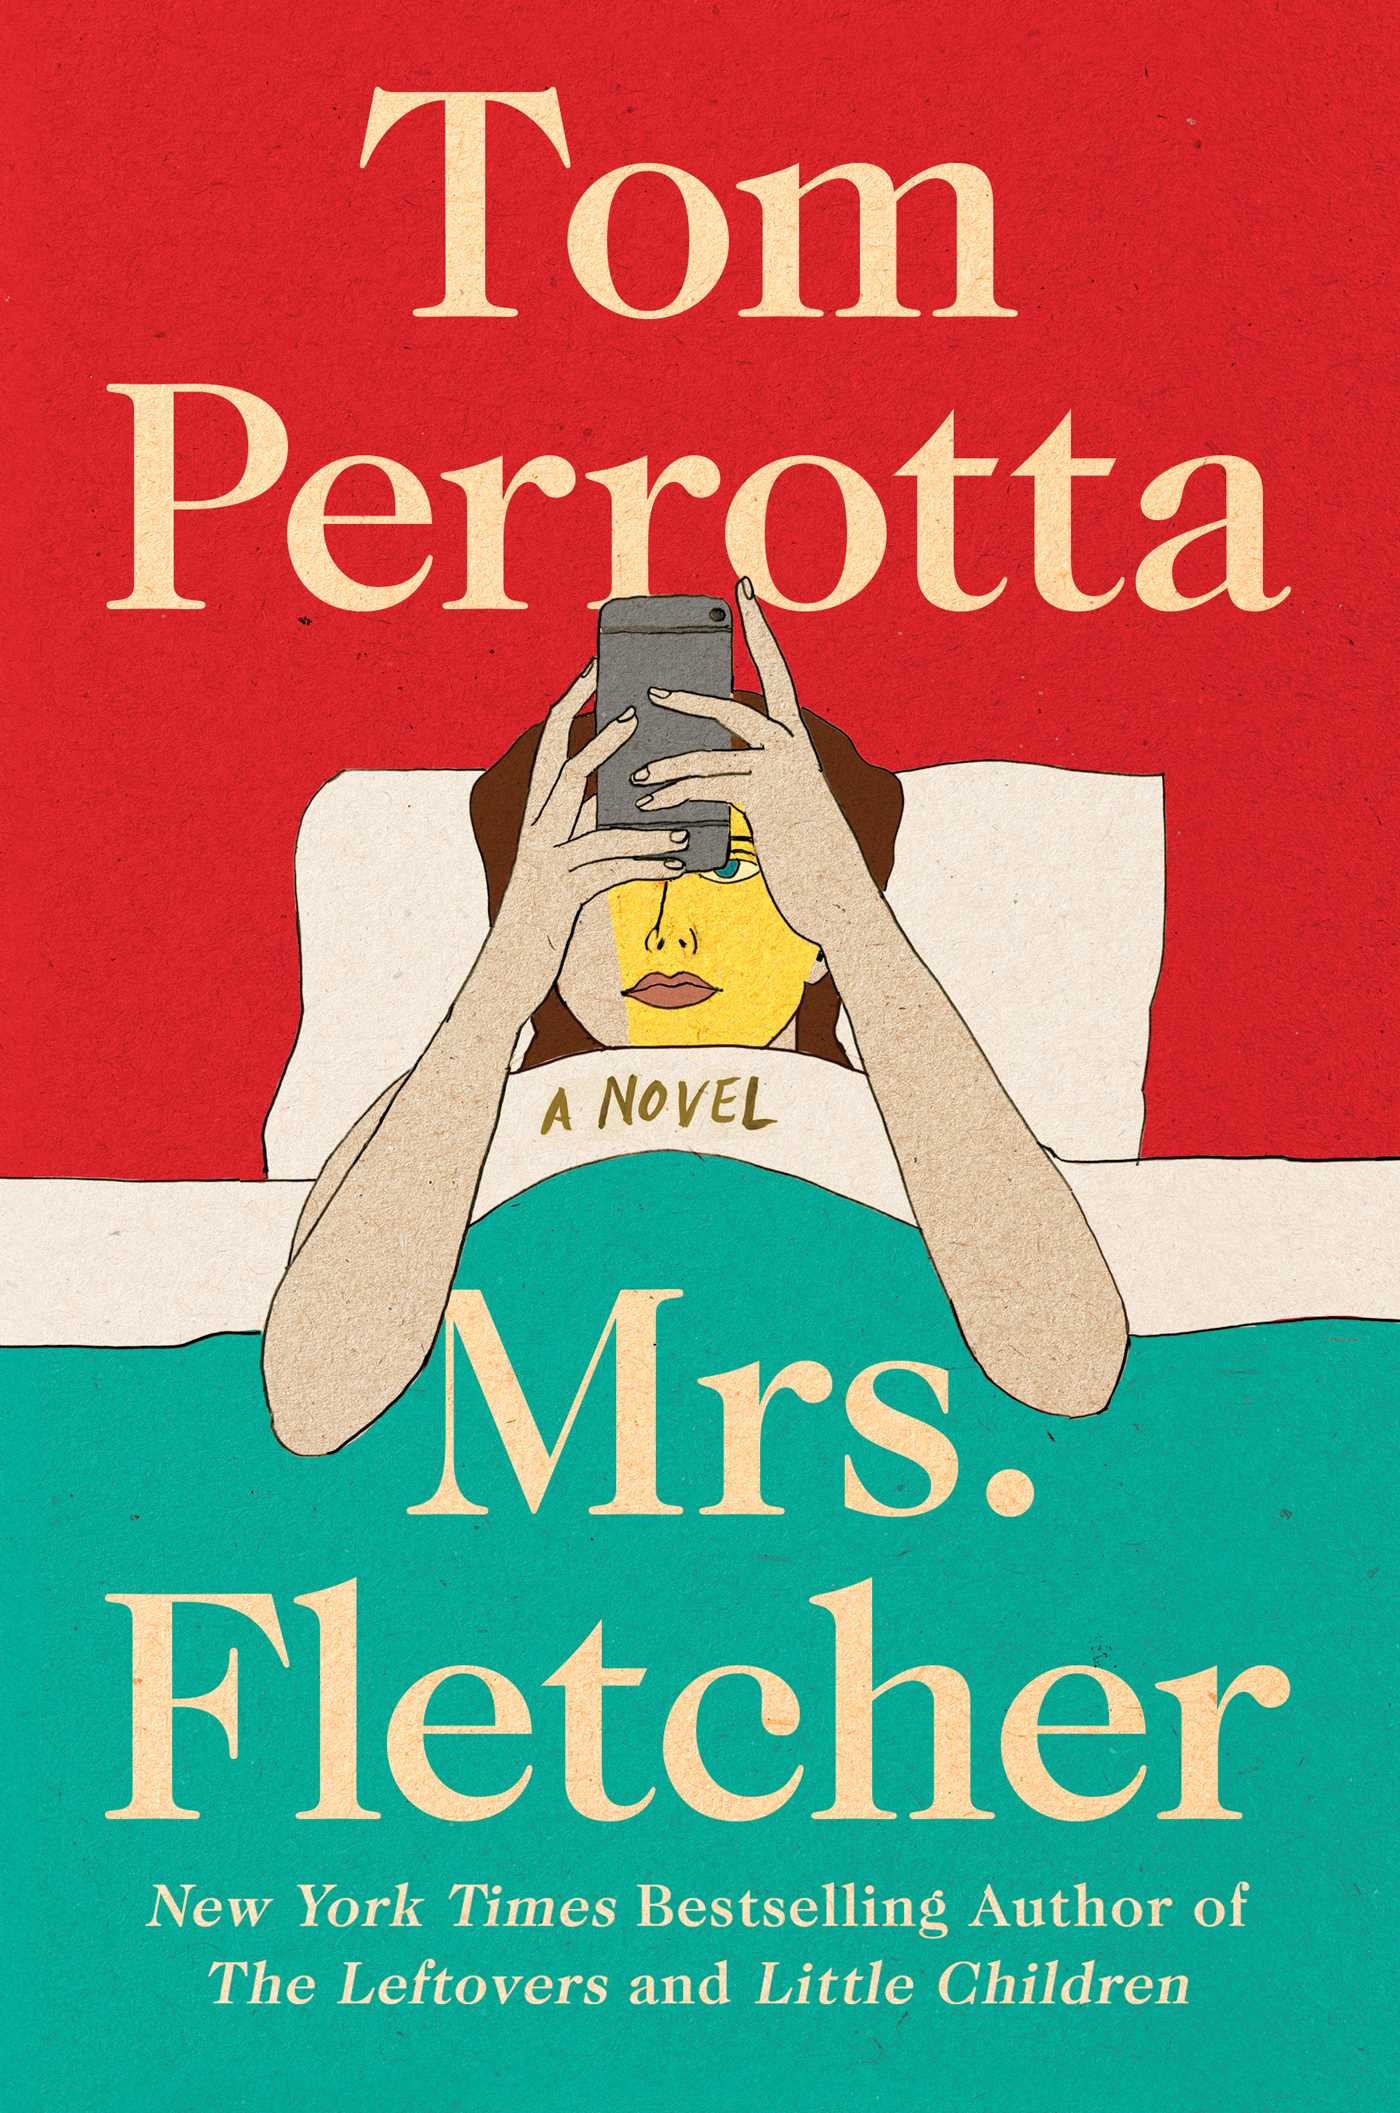 The cover of the book Mrs. Fletcher